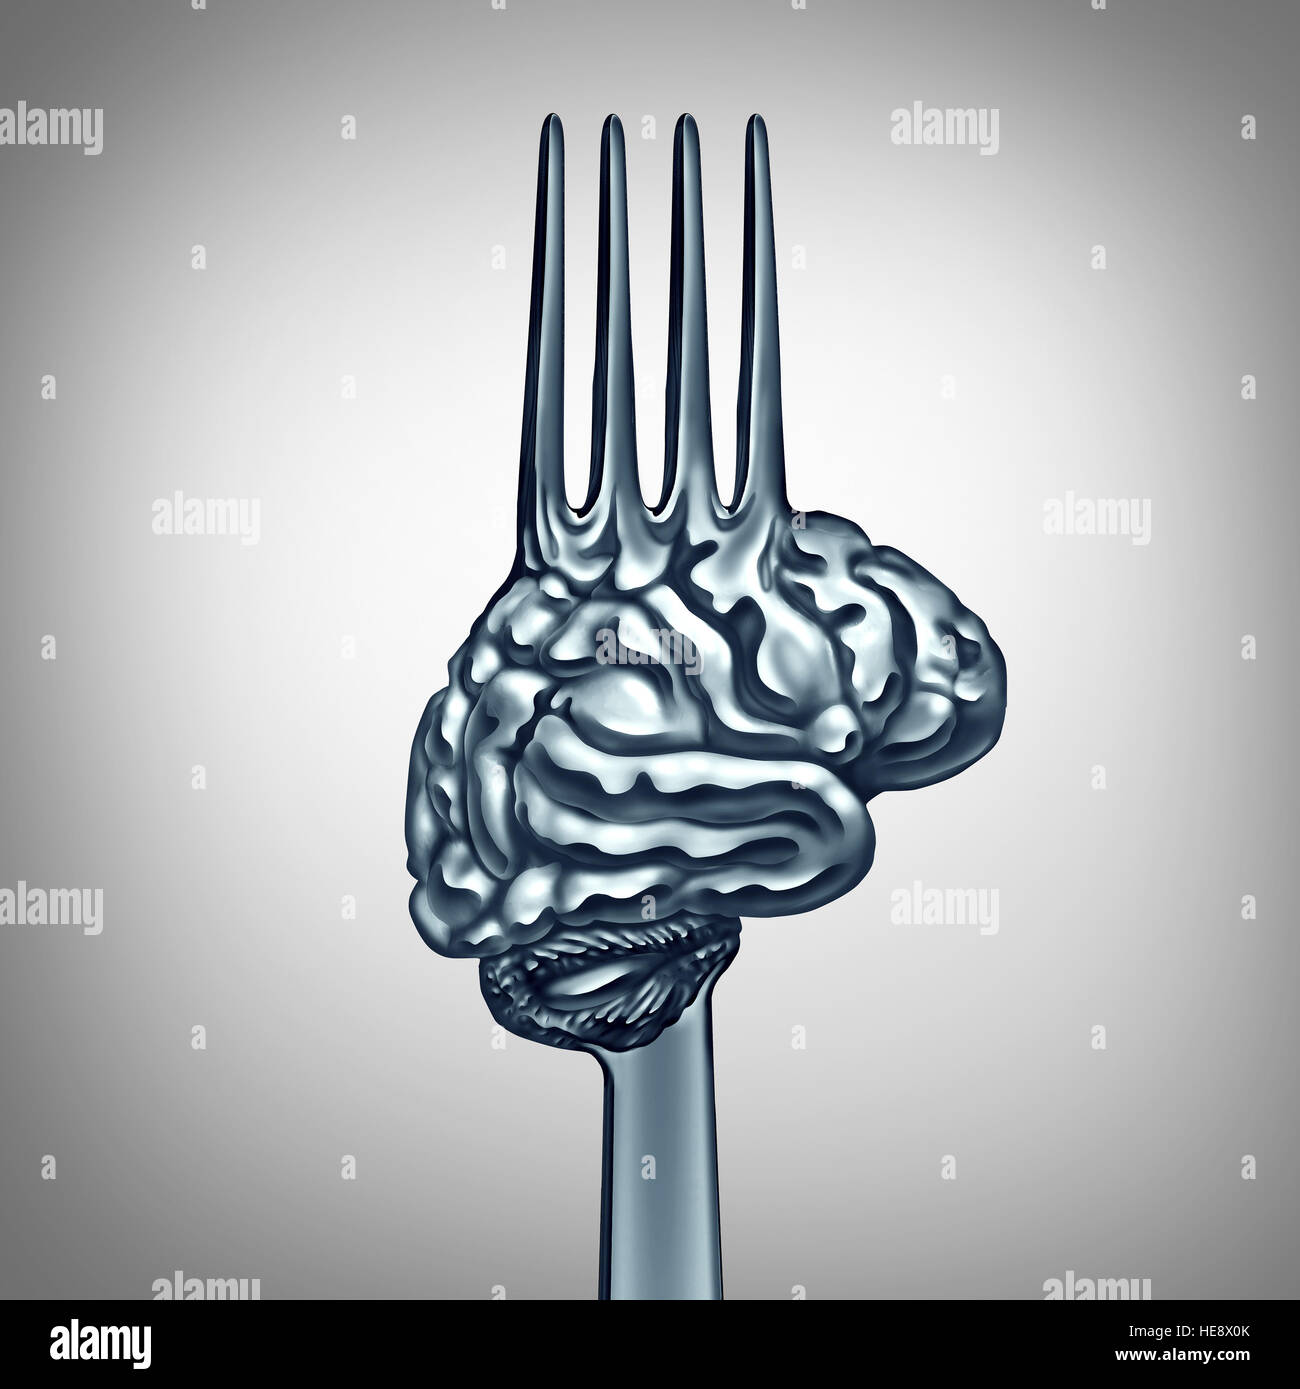 Brain food symbol as a metal fork shaped as a human thinking organ to boost brainpower with nutrition concept for - Stock Image